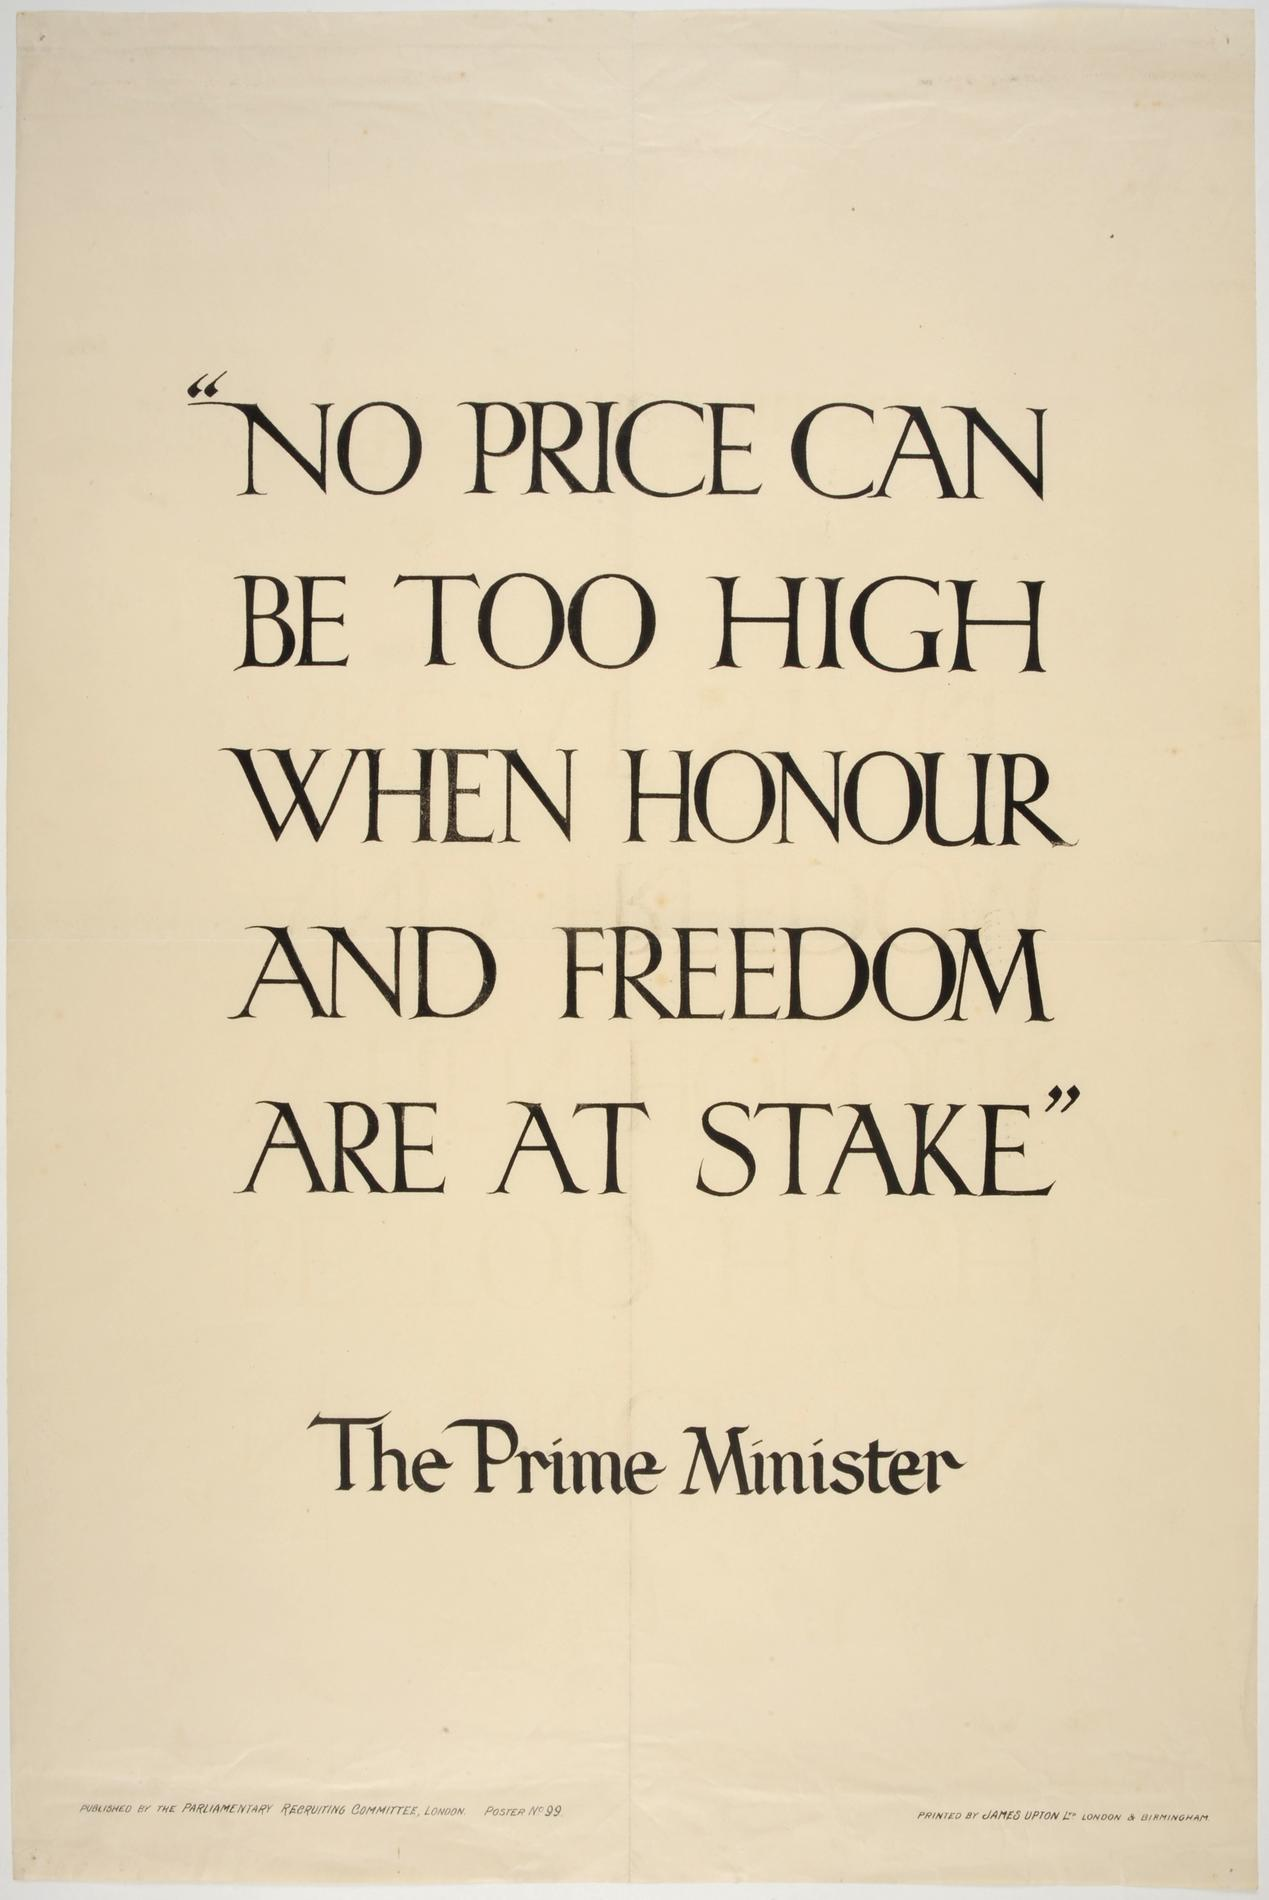 """'""""No price can be too high when honour and freedom are at stake"""" (Poster)"""